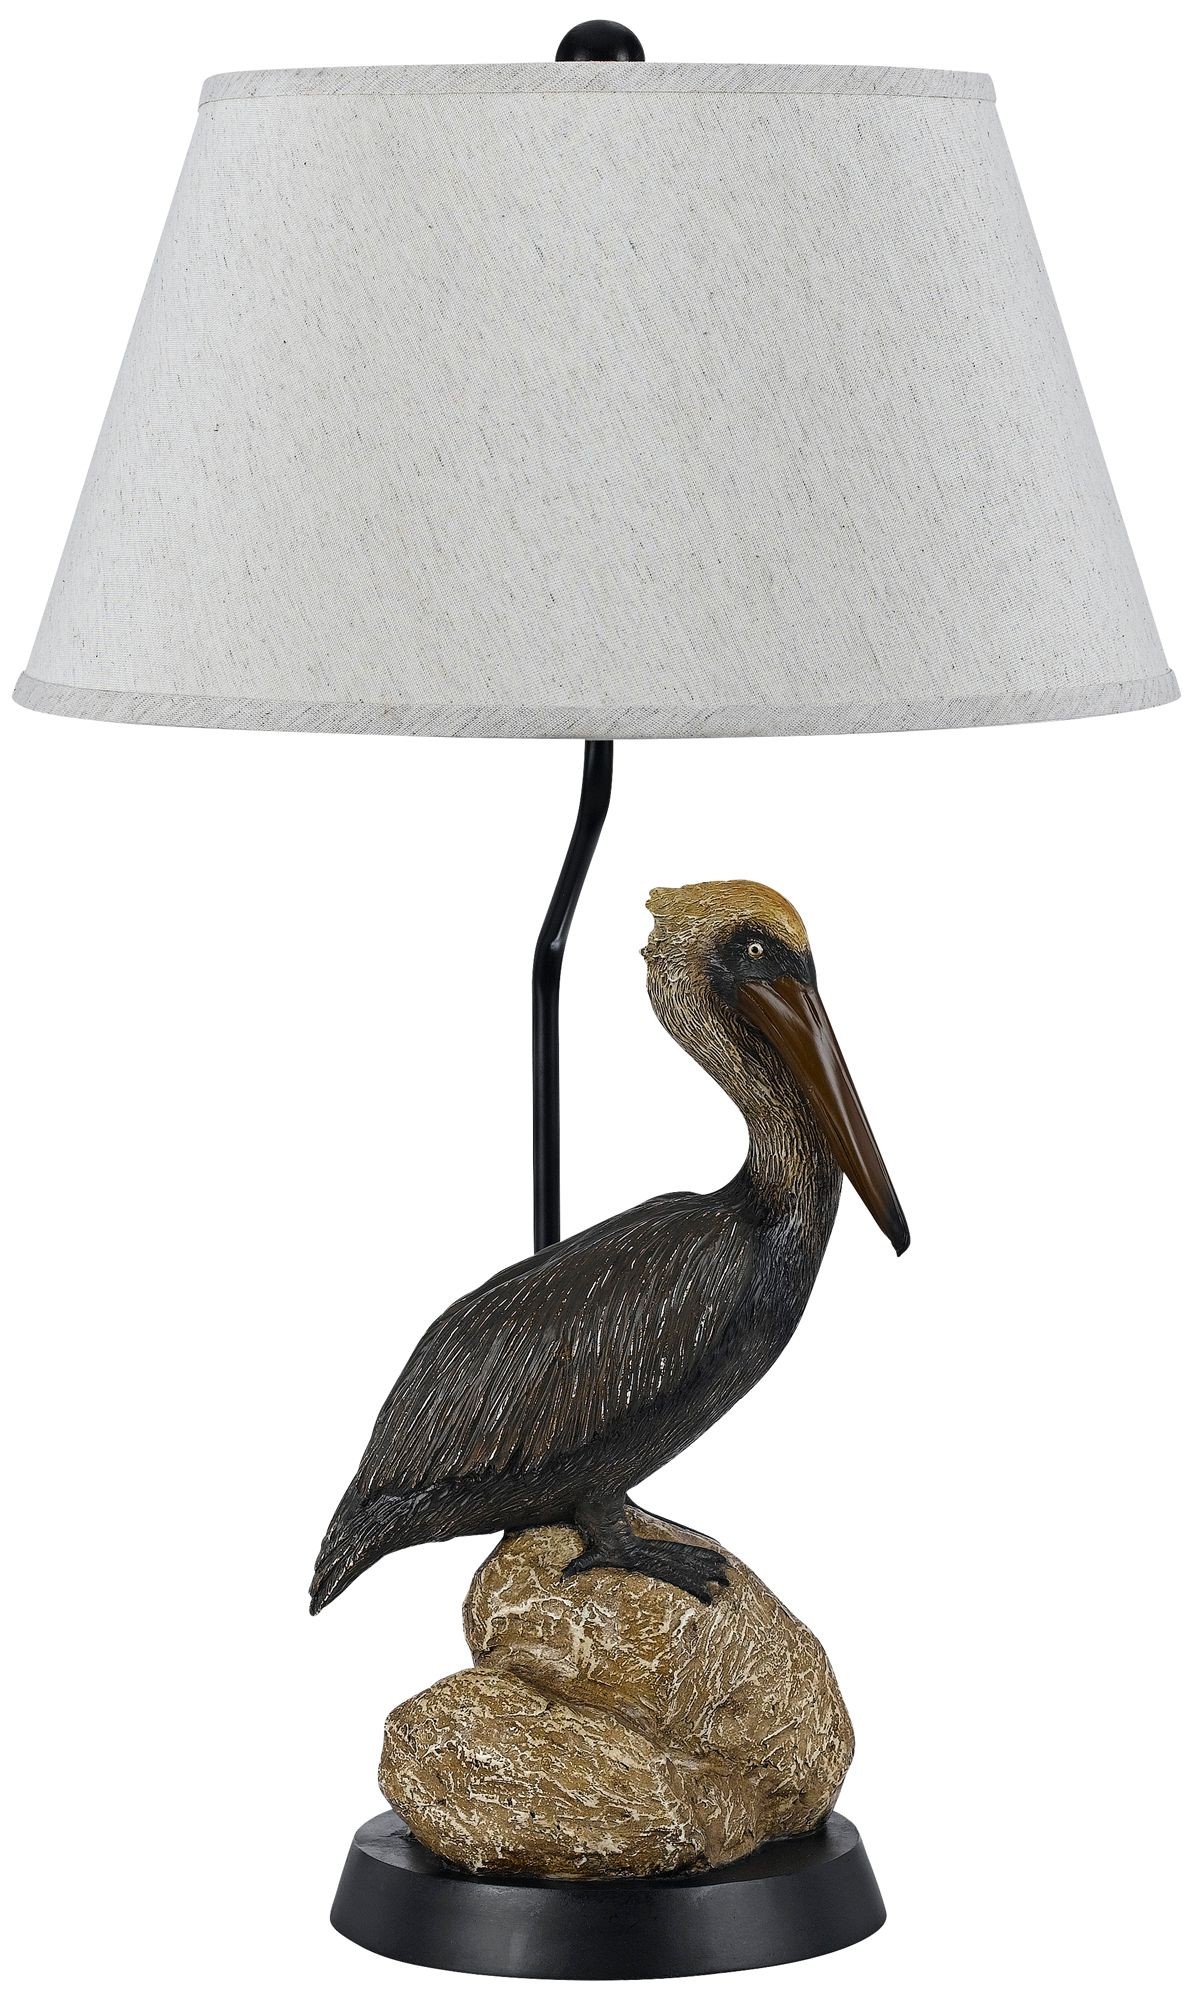 Barnstable Pelican Tropical Table Lamp